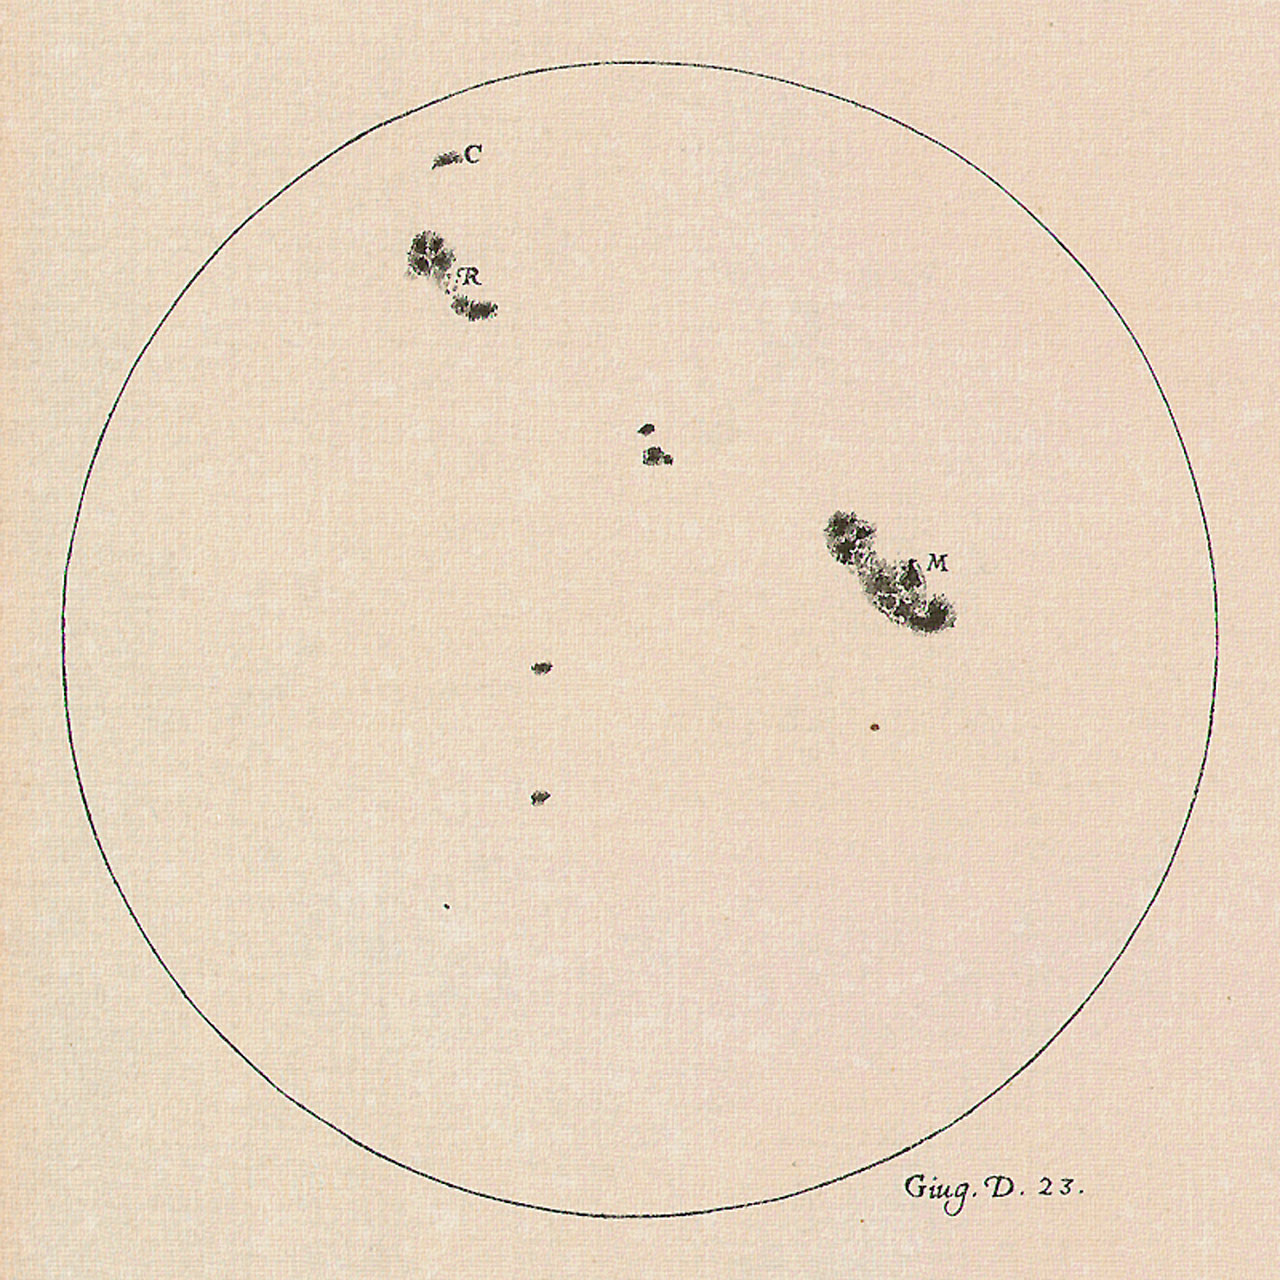 A drawing of the Sun made by Galileo Galilei on 23 June 1613 showing the positions and sizes of a number of sunspots. Galileo was one of the first to observe and document sunspots. Image credit: The Galileo Project/M. Kornmesser.